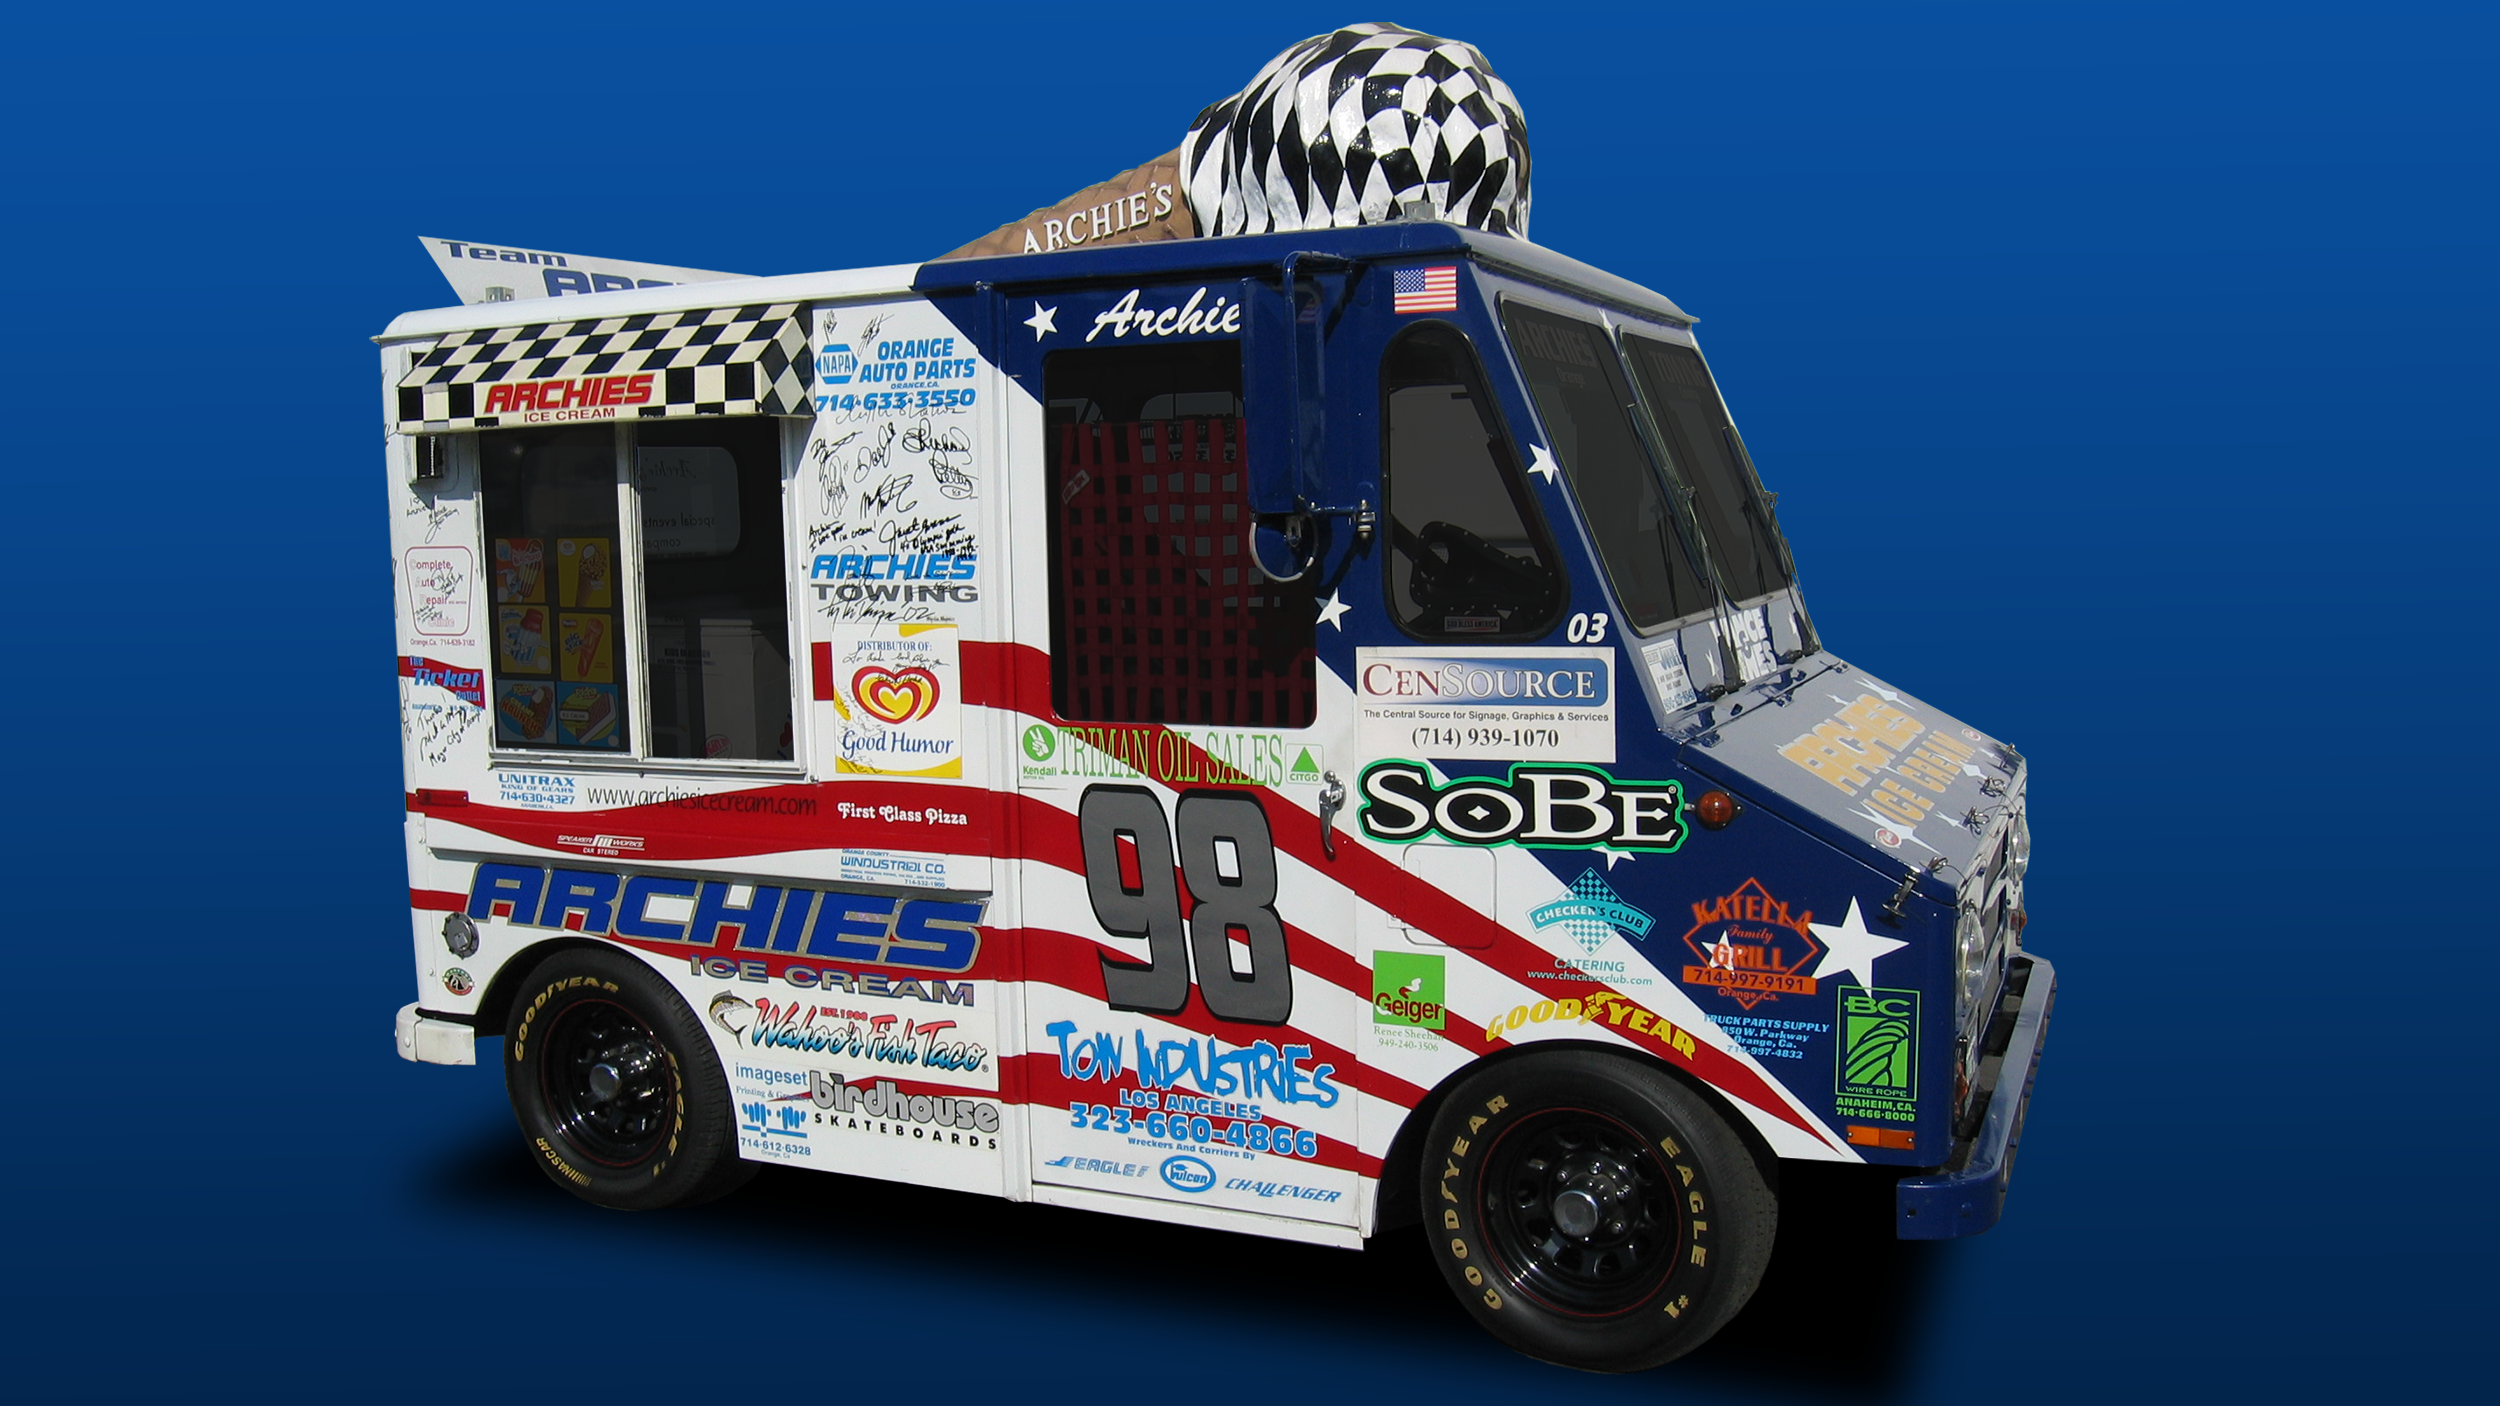 ArchiesWebsite_RaceTruck_v1.png